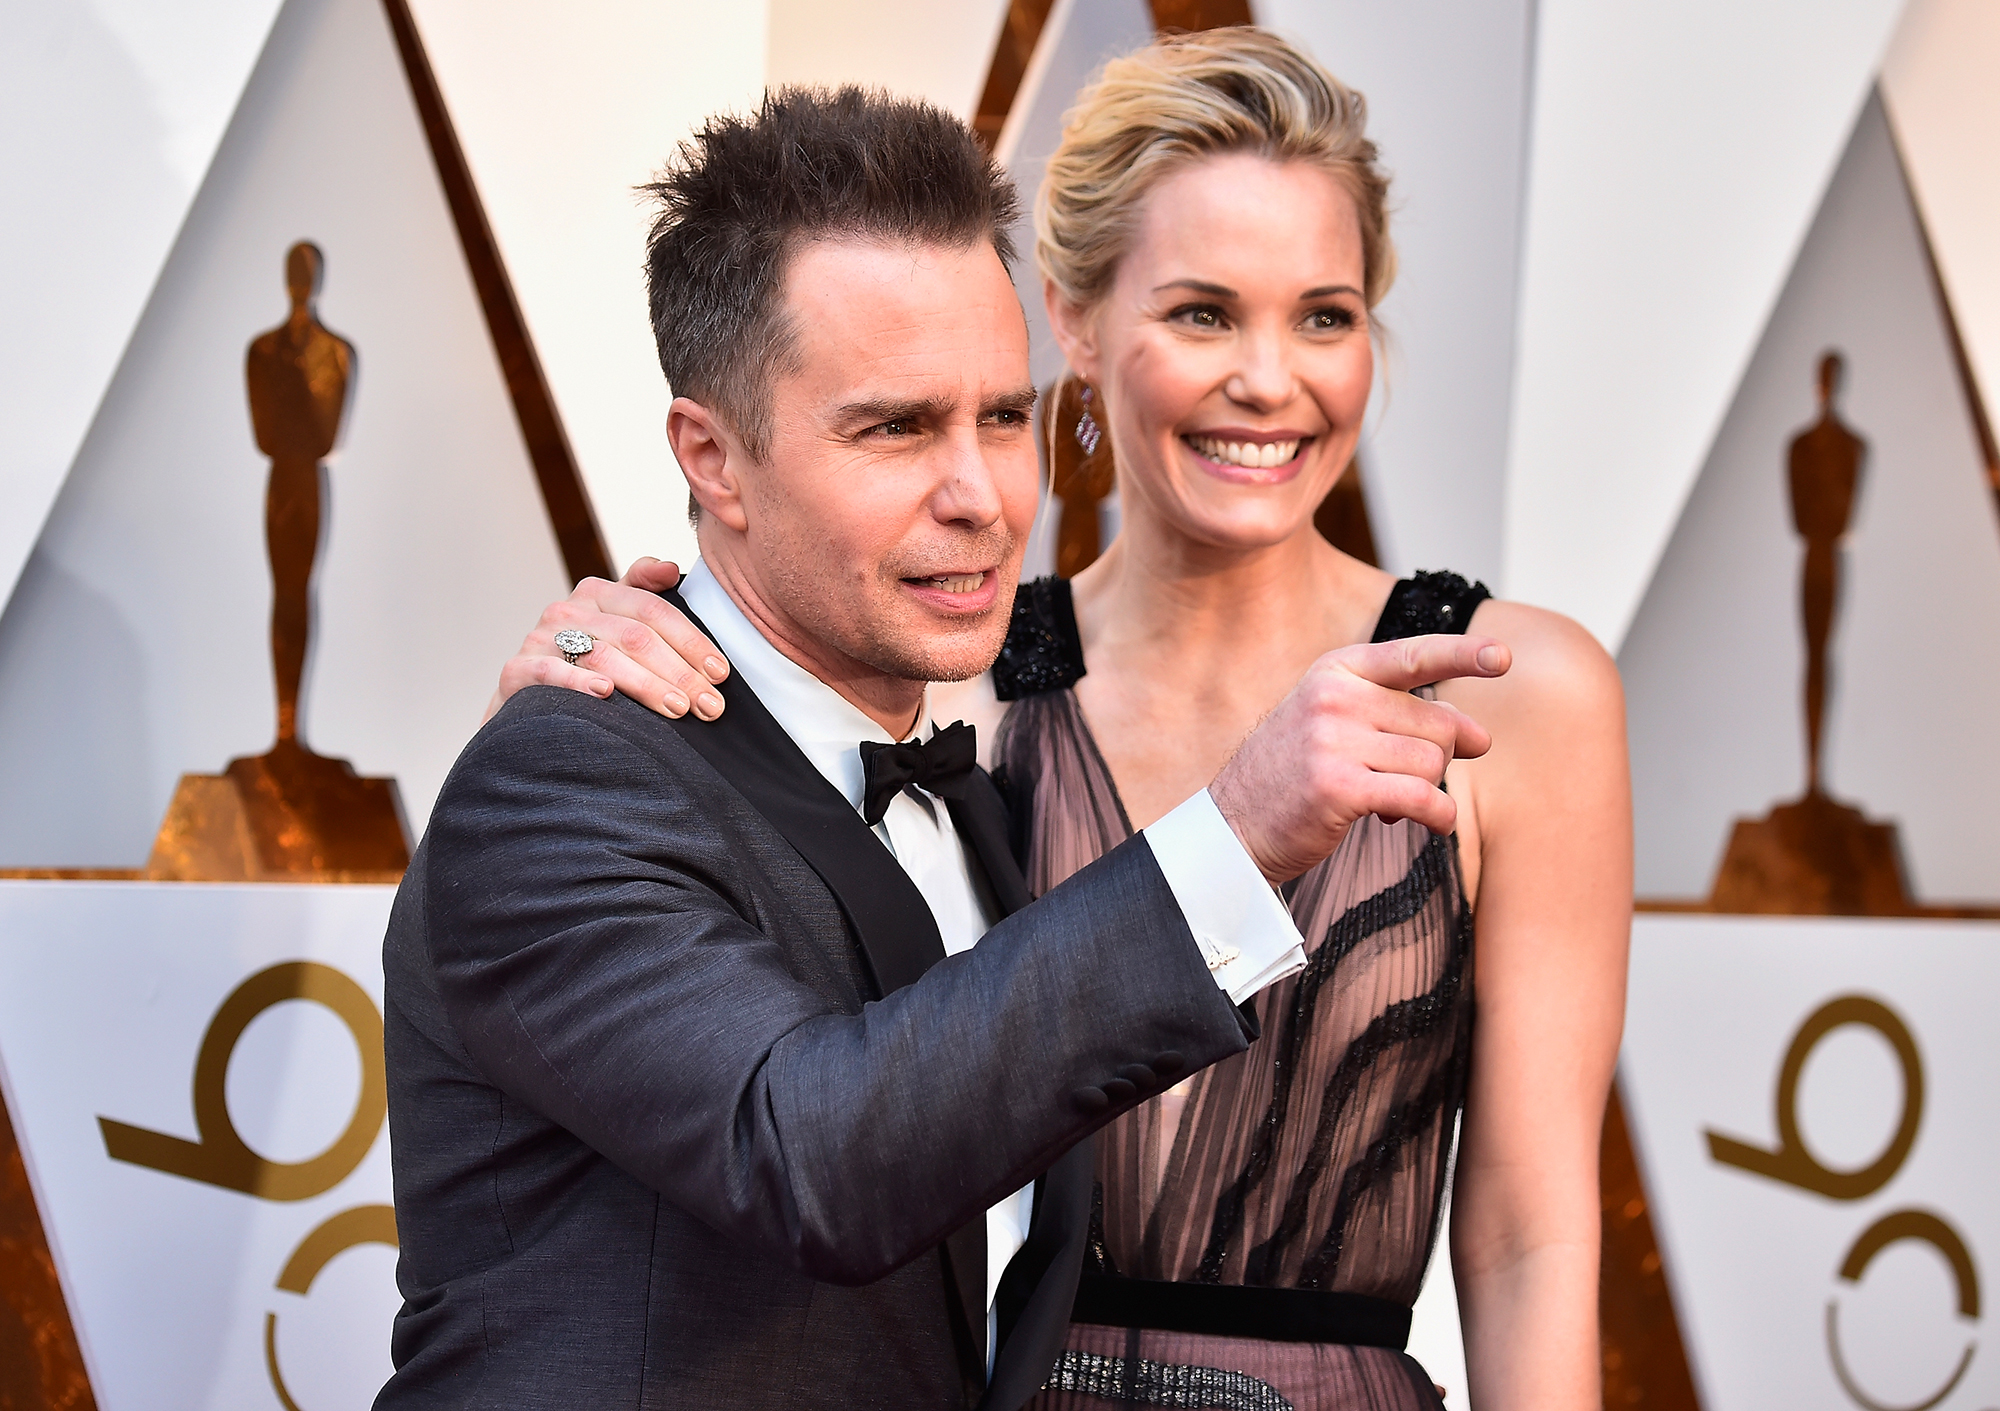 Oscars: Sam Rockwell Wins Best Supporting Actor for 'Three Billboards'